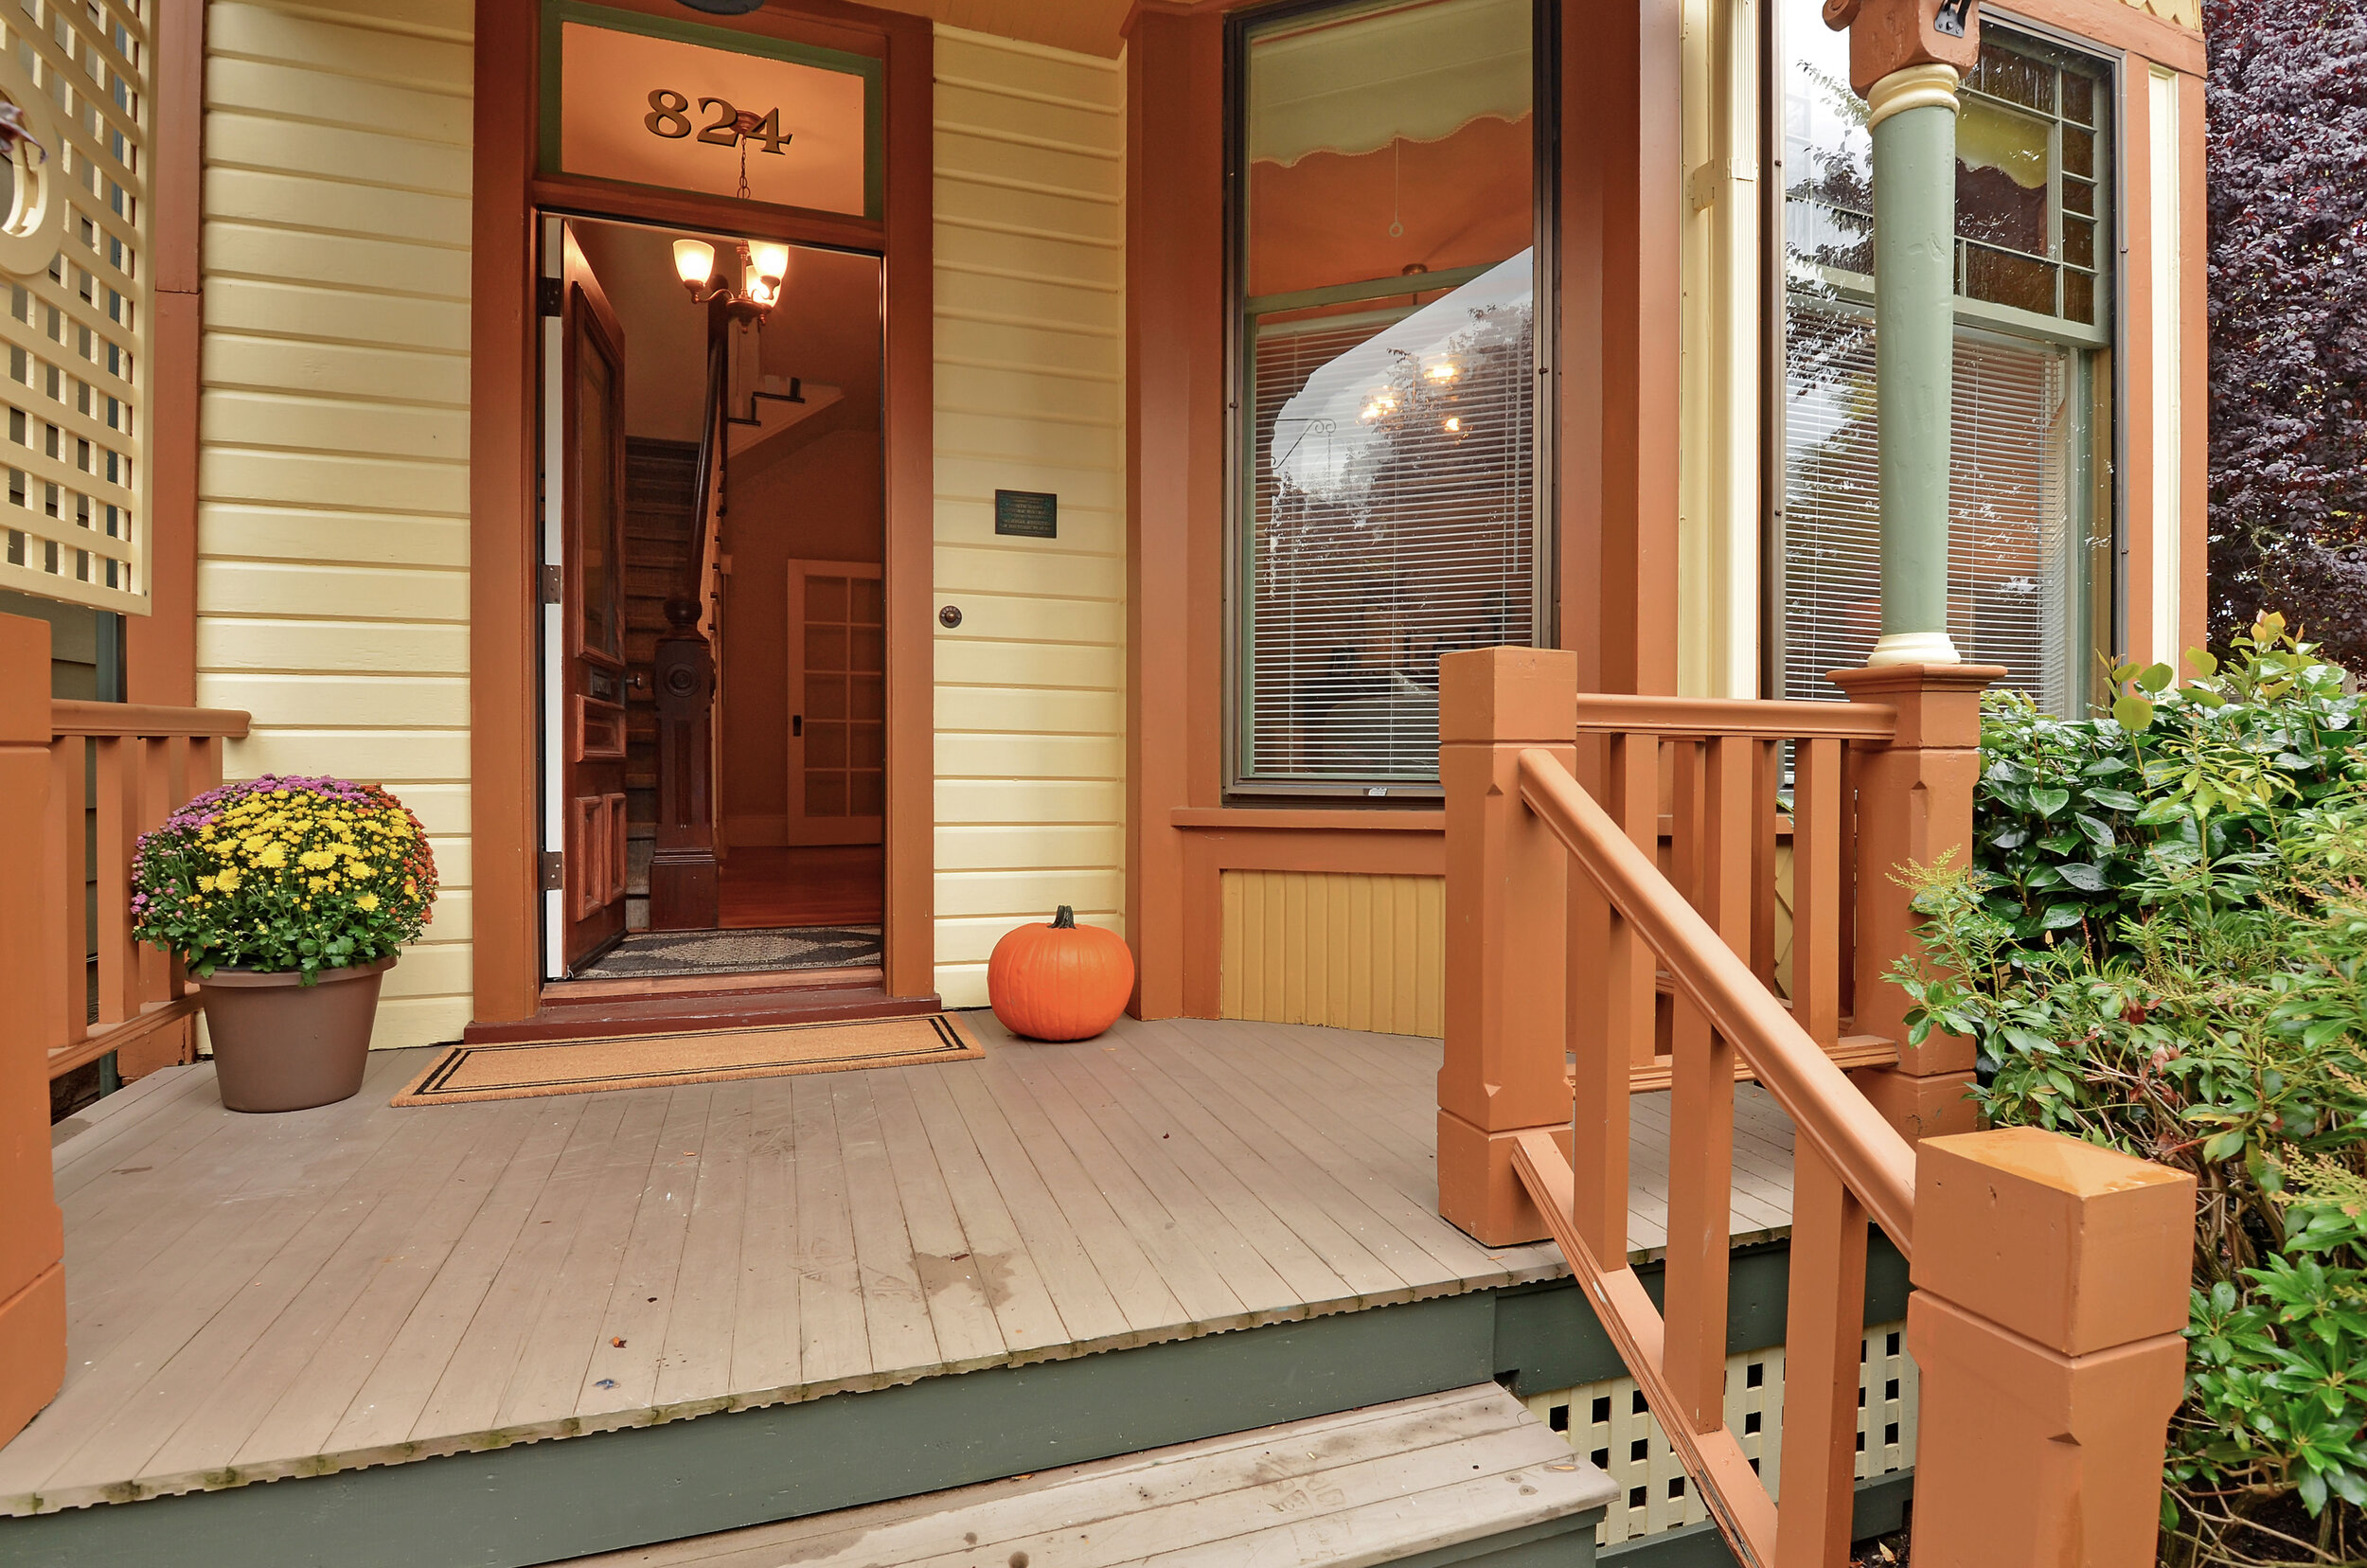 A covered front porch faces M St. and overlooks the carefully landscaped front yard with its masonry walls and paved paths.